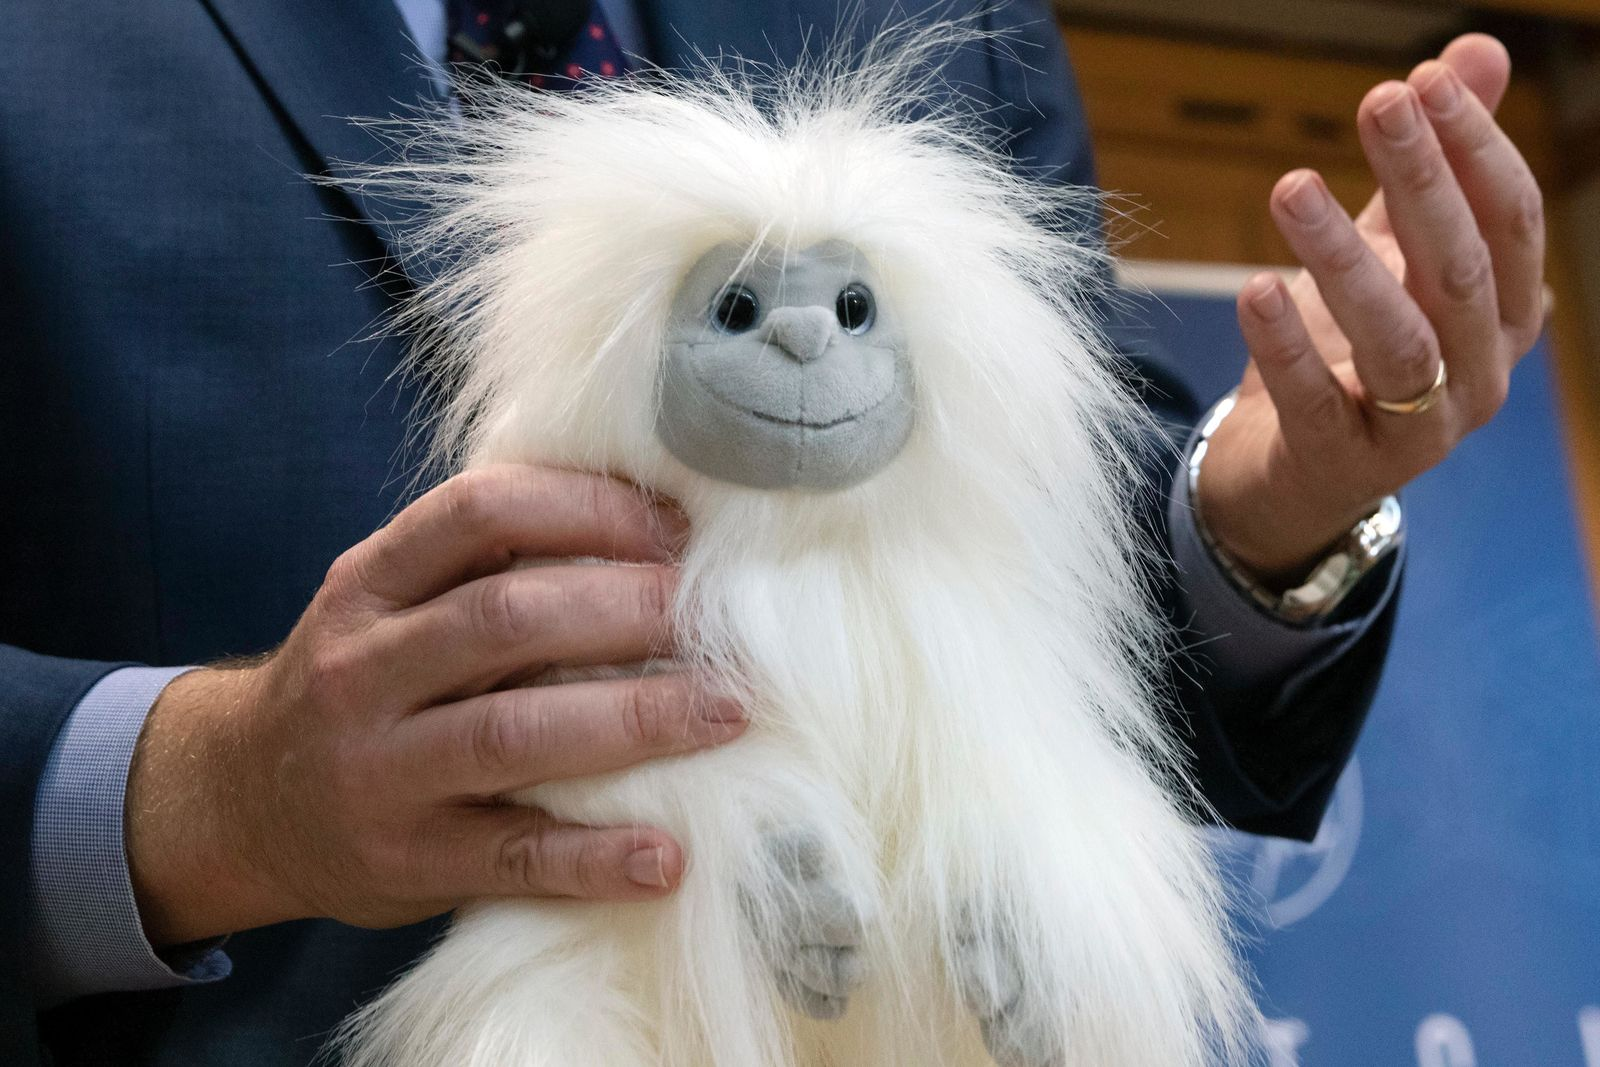 James Swartz, director of World Against Toys Causing Harm, talks about the dangers of a yeti teddy bear during a news conference unveiling the organization's list of worst toys for the holidays, Tuesday, Nov. 19, 2019, in Boston. (AP Photo/Michael Dwyer)